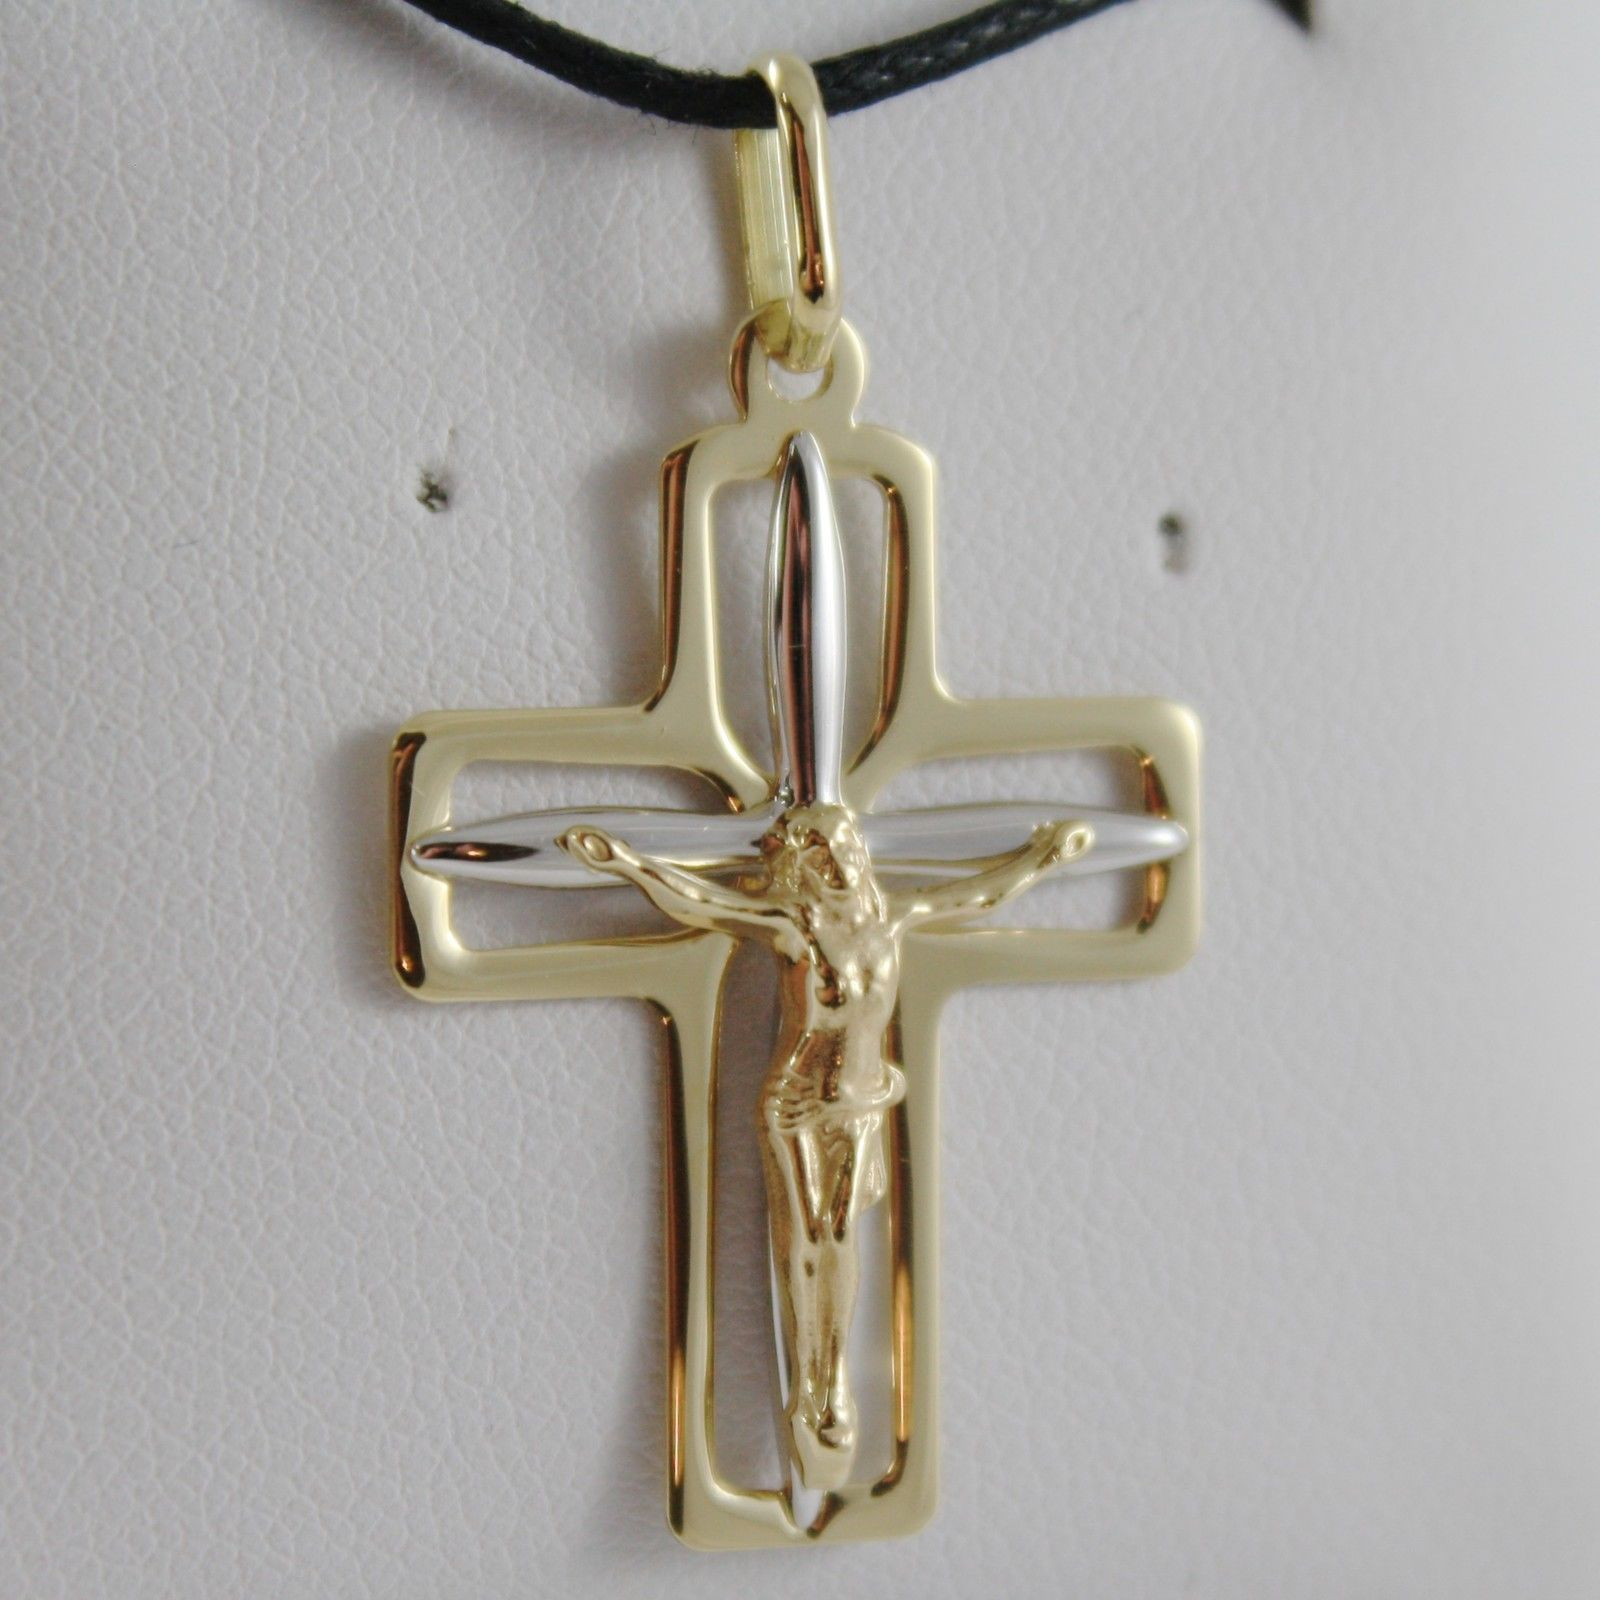 18K YELLOW WHITE GOLD CROSS WITH JESUS SMOOTH STYLIZED SQUARED MADE IN ITALY